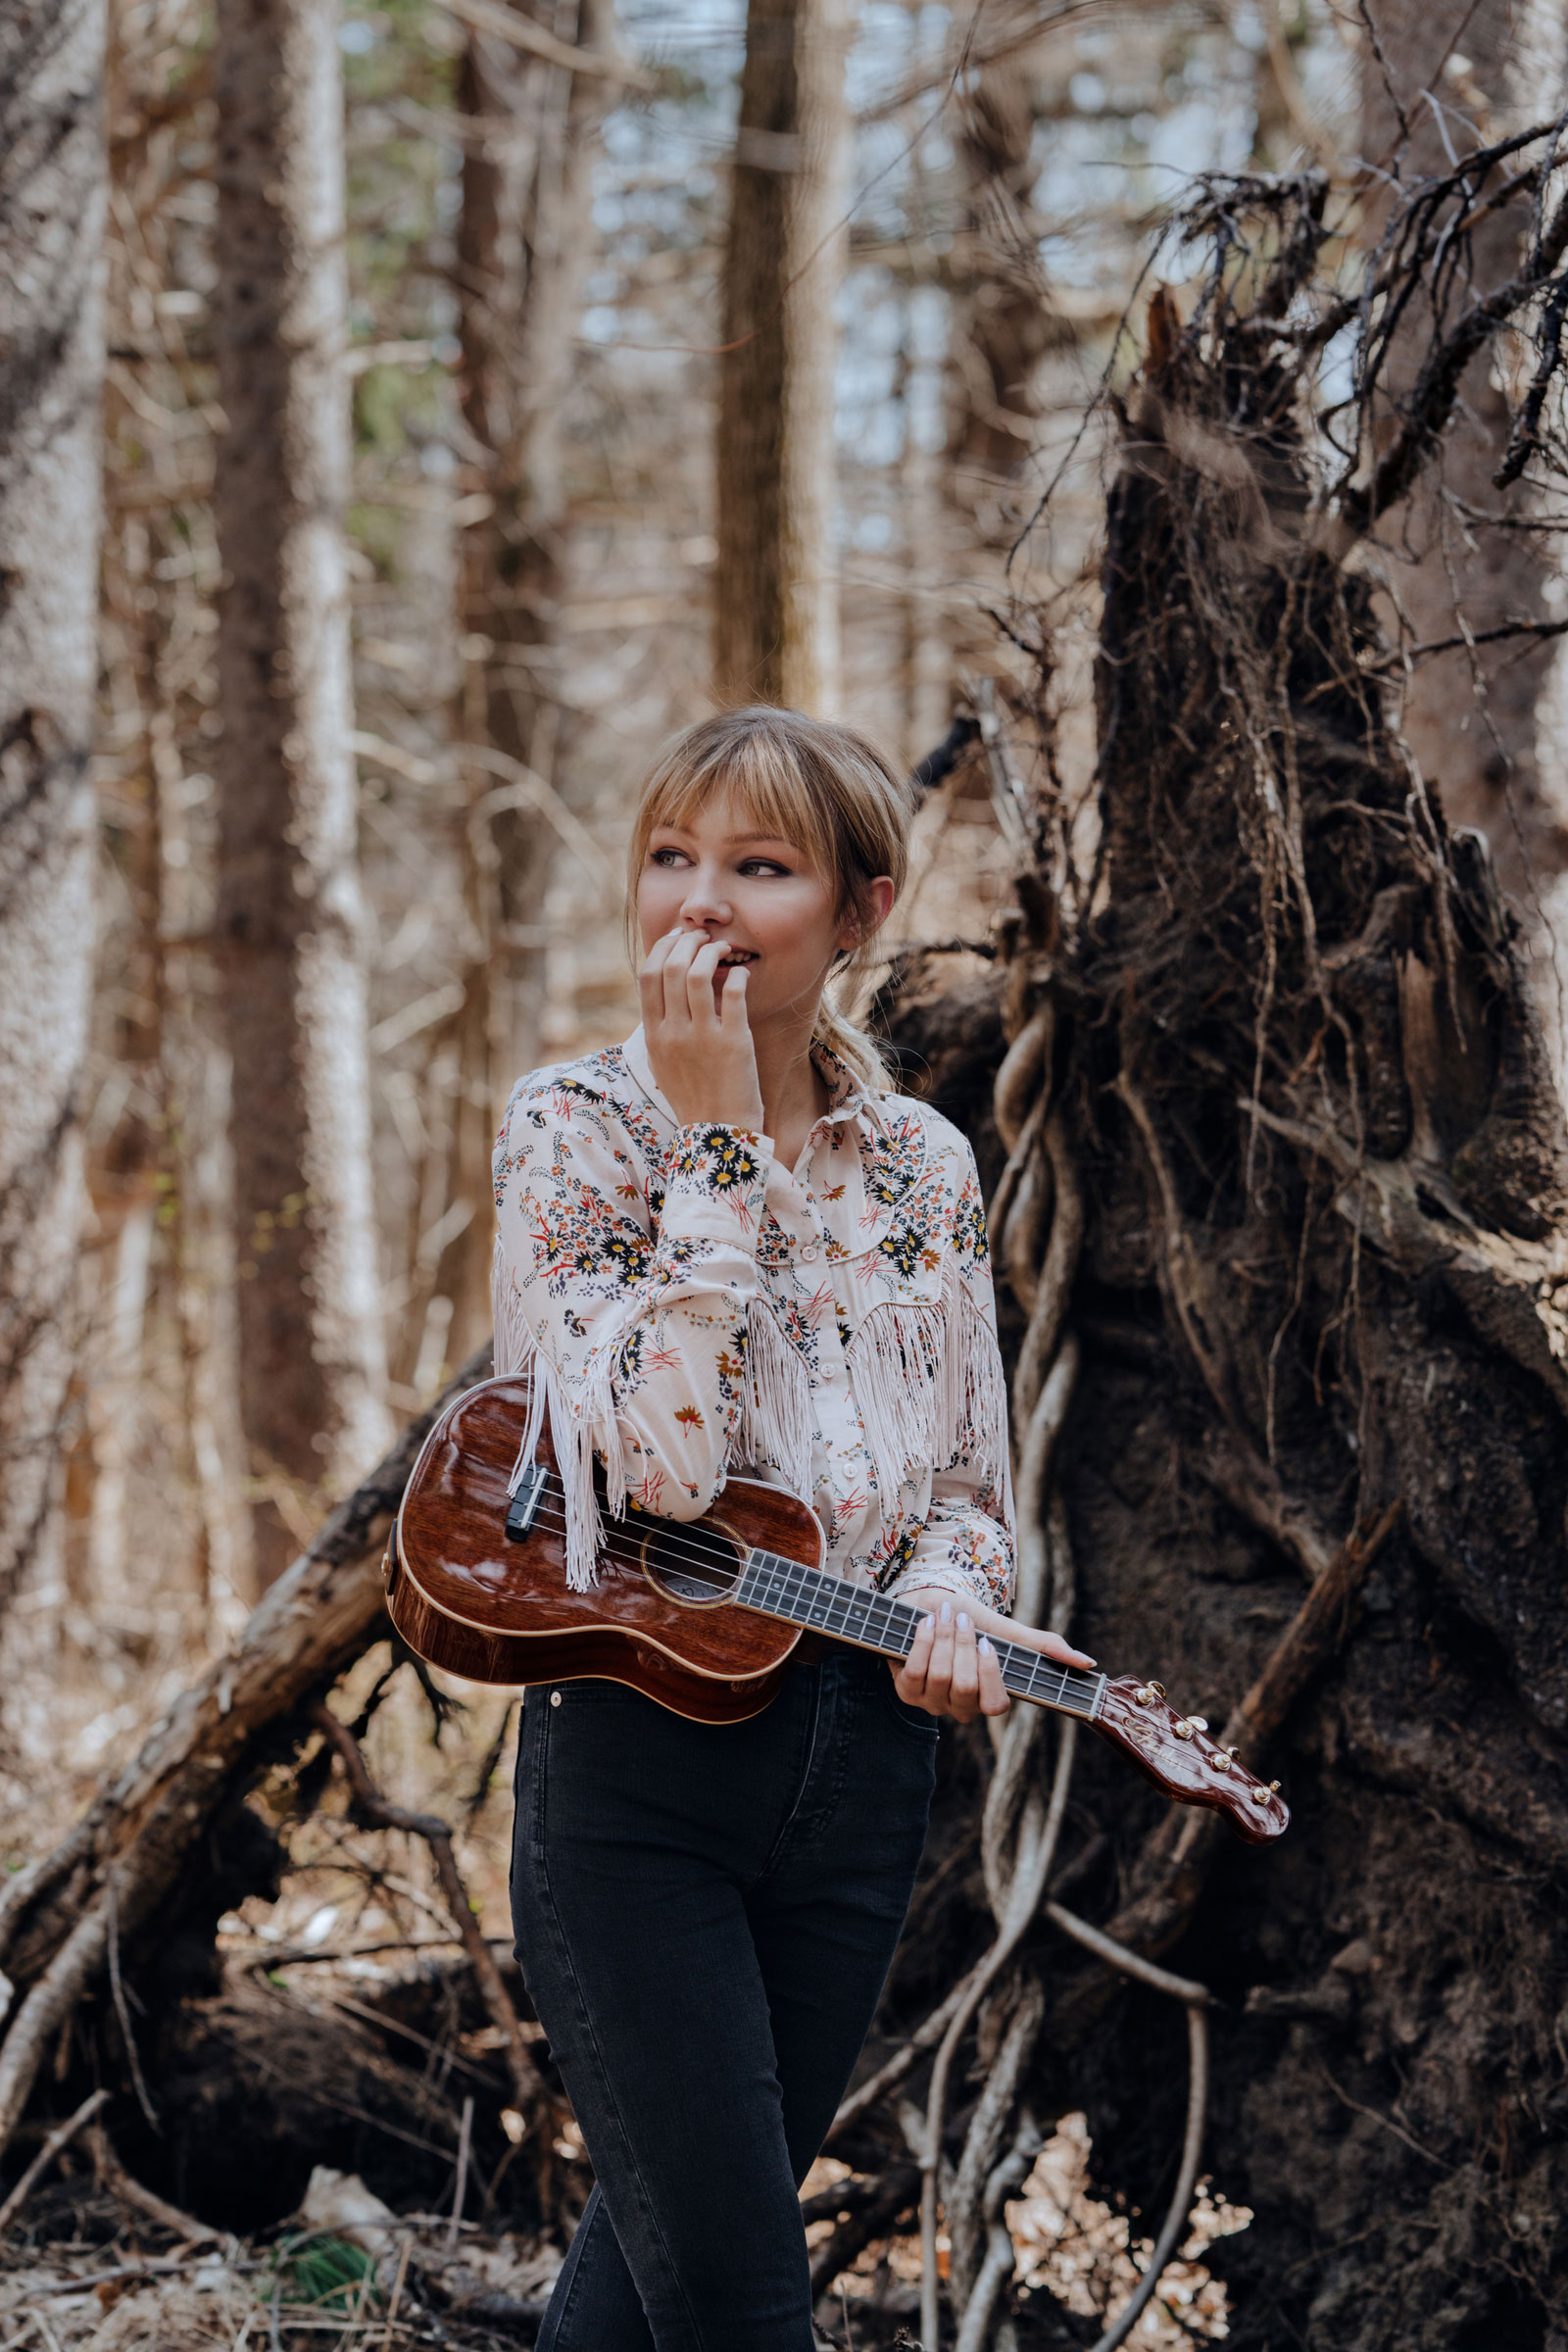 Grace VanderWaal, Fender's youngest signature artist, releases her performance-inspired Grace VanderWaal signature ukulele with Fender, available now on Fender.com and at local dealers.